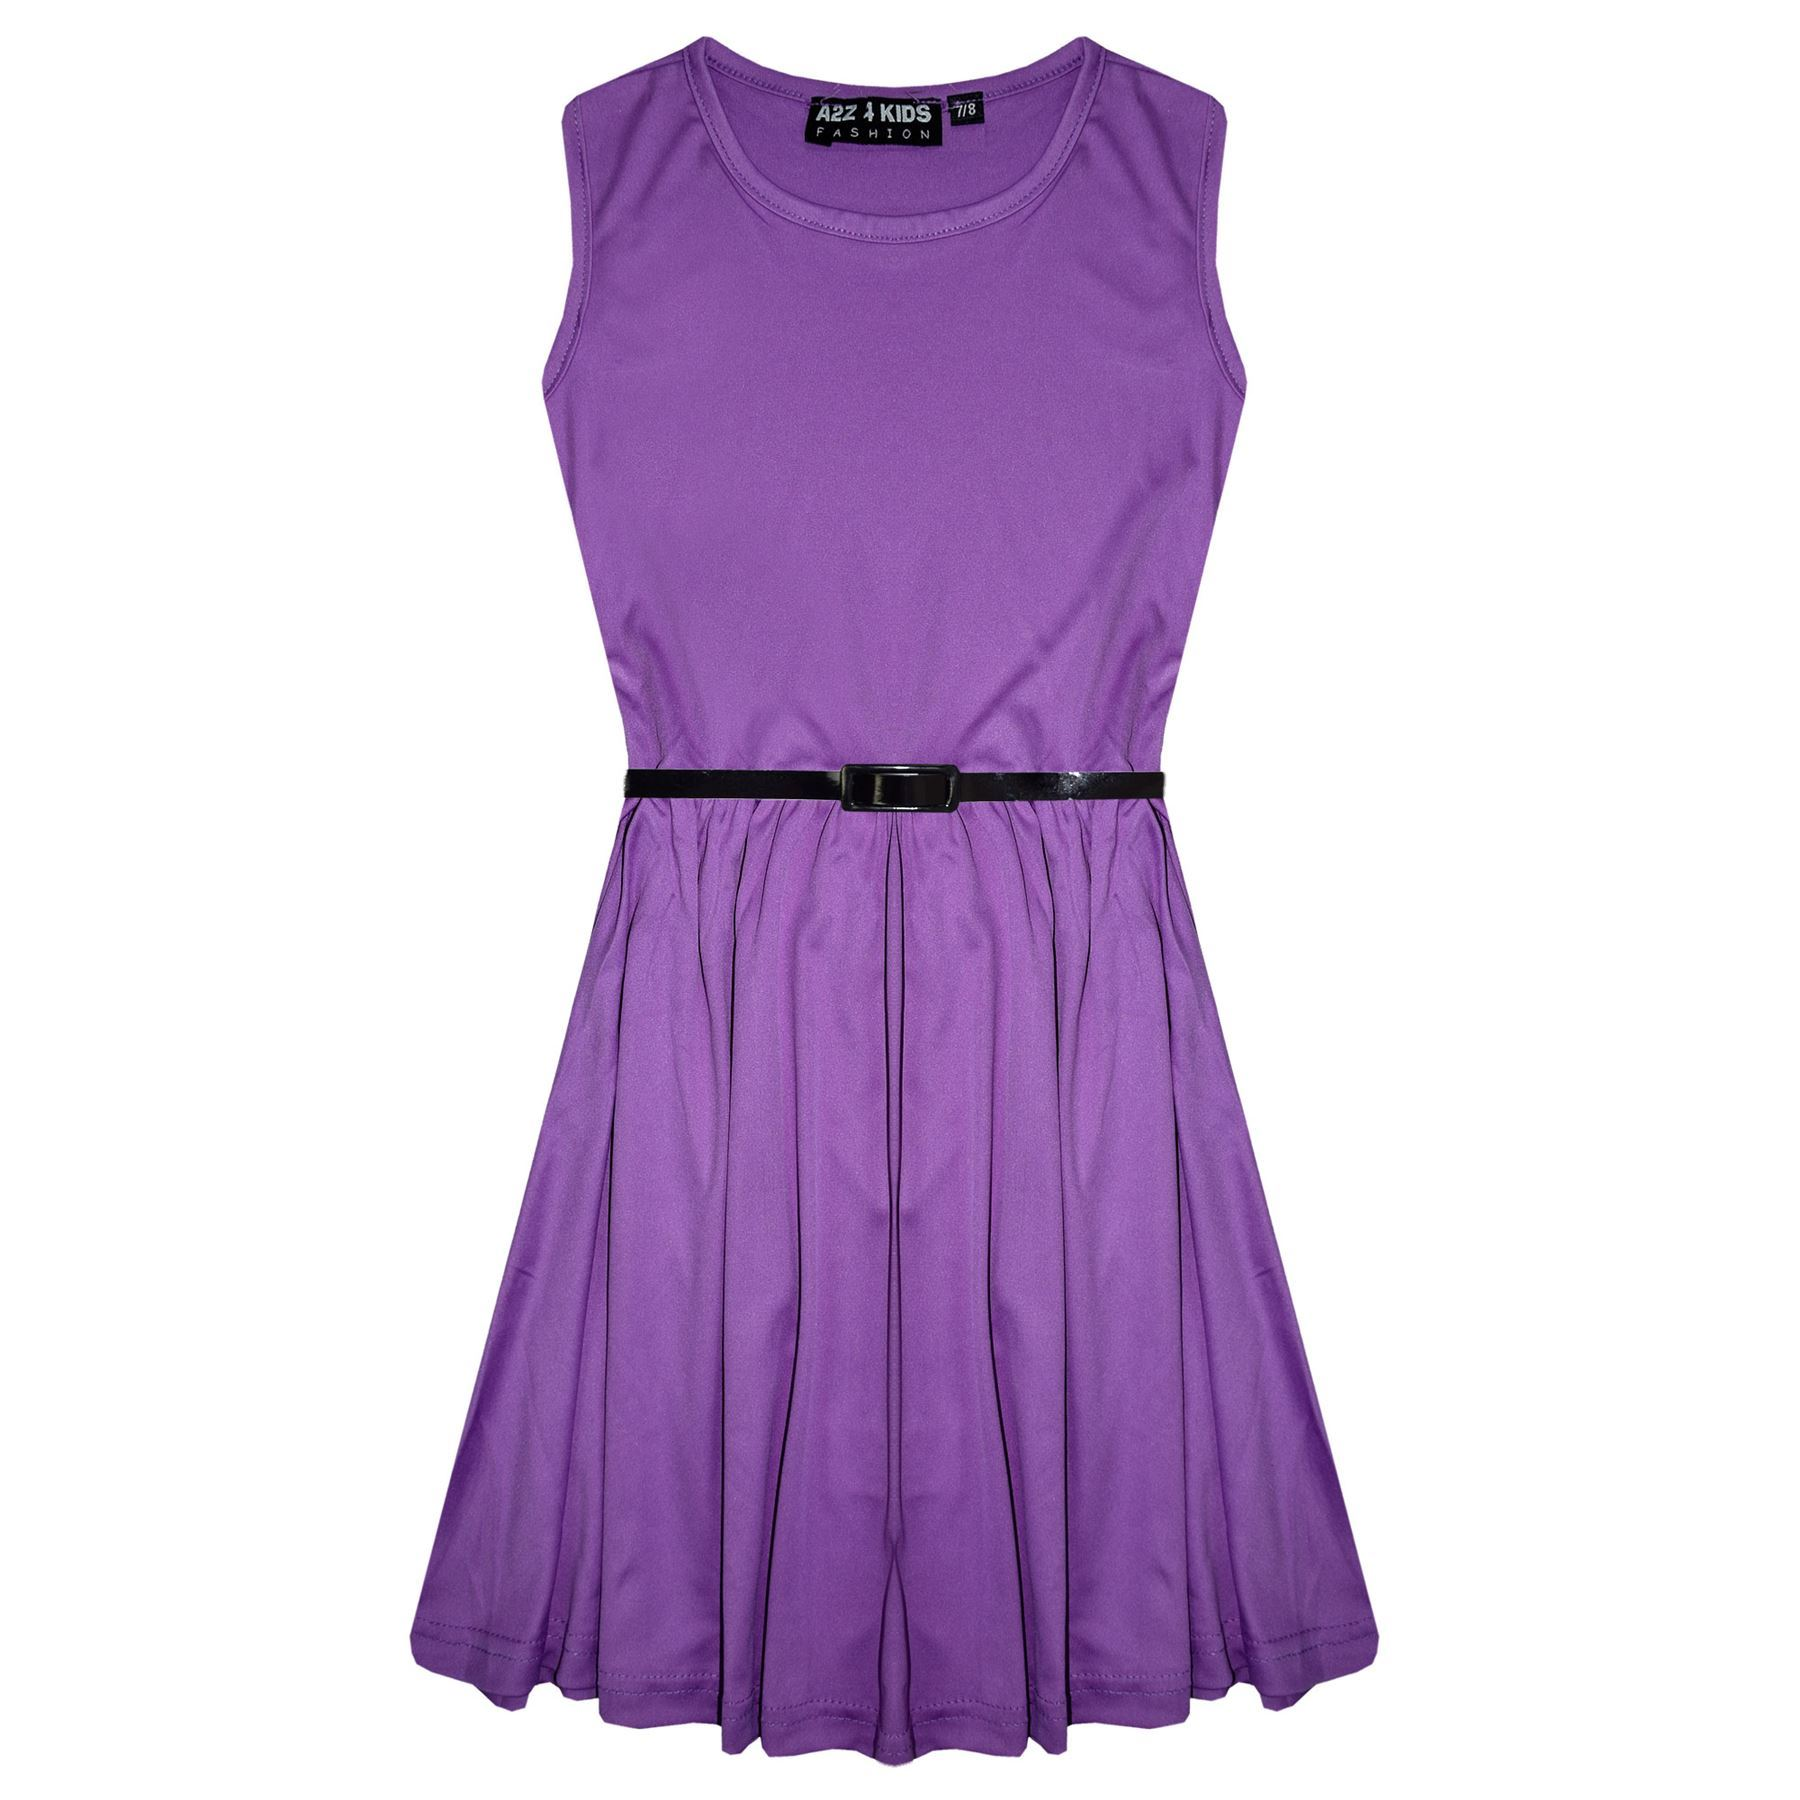 Girls-Skater-Dress-Kids-Party-Dresses-With-Free-Belt-5-6-7-8-9-10-11-12-13-Years miniatuur 36